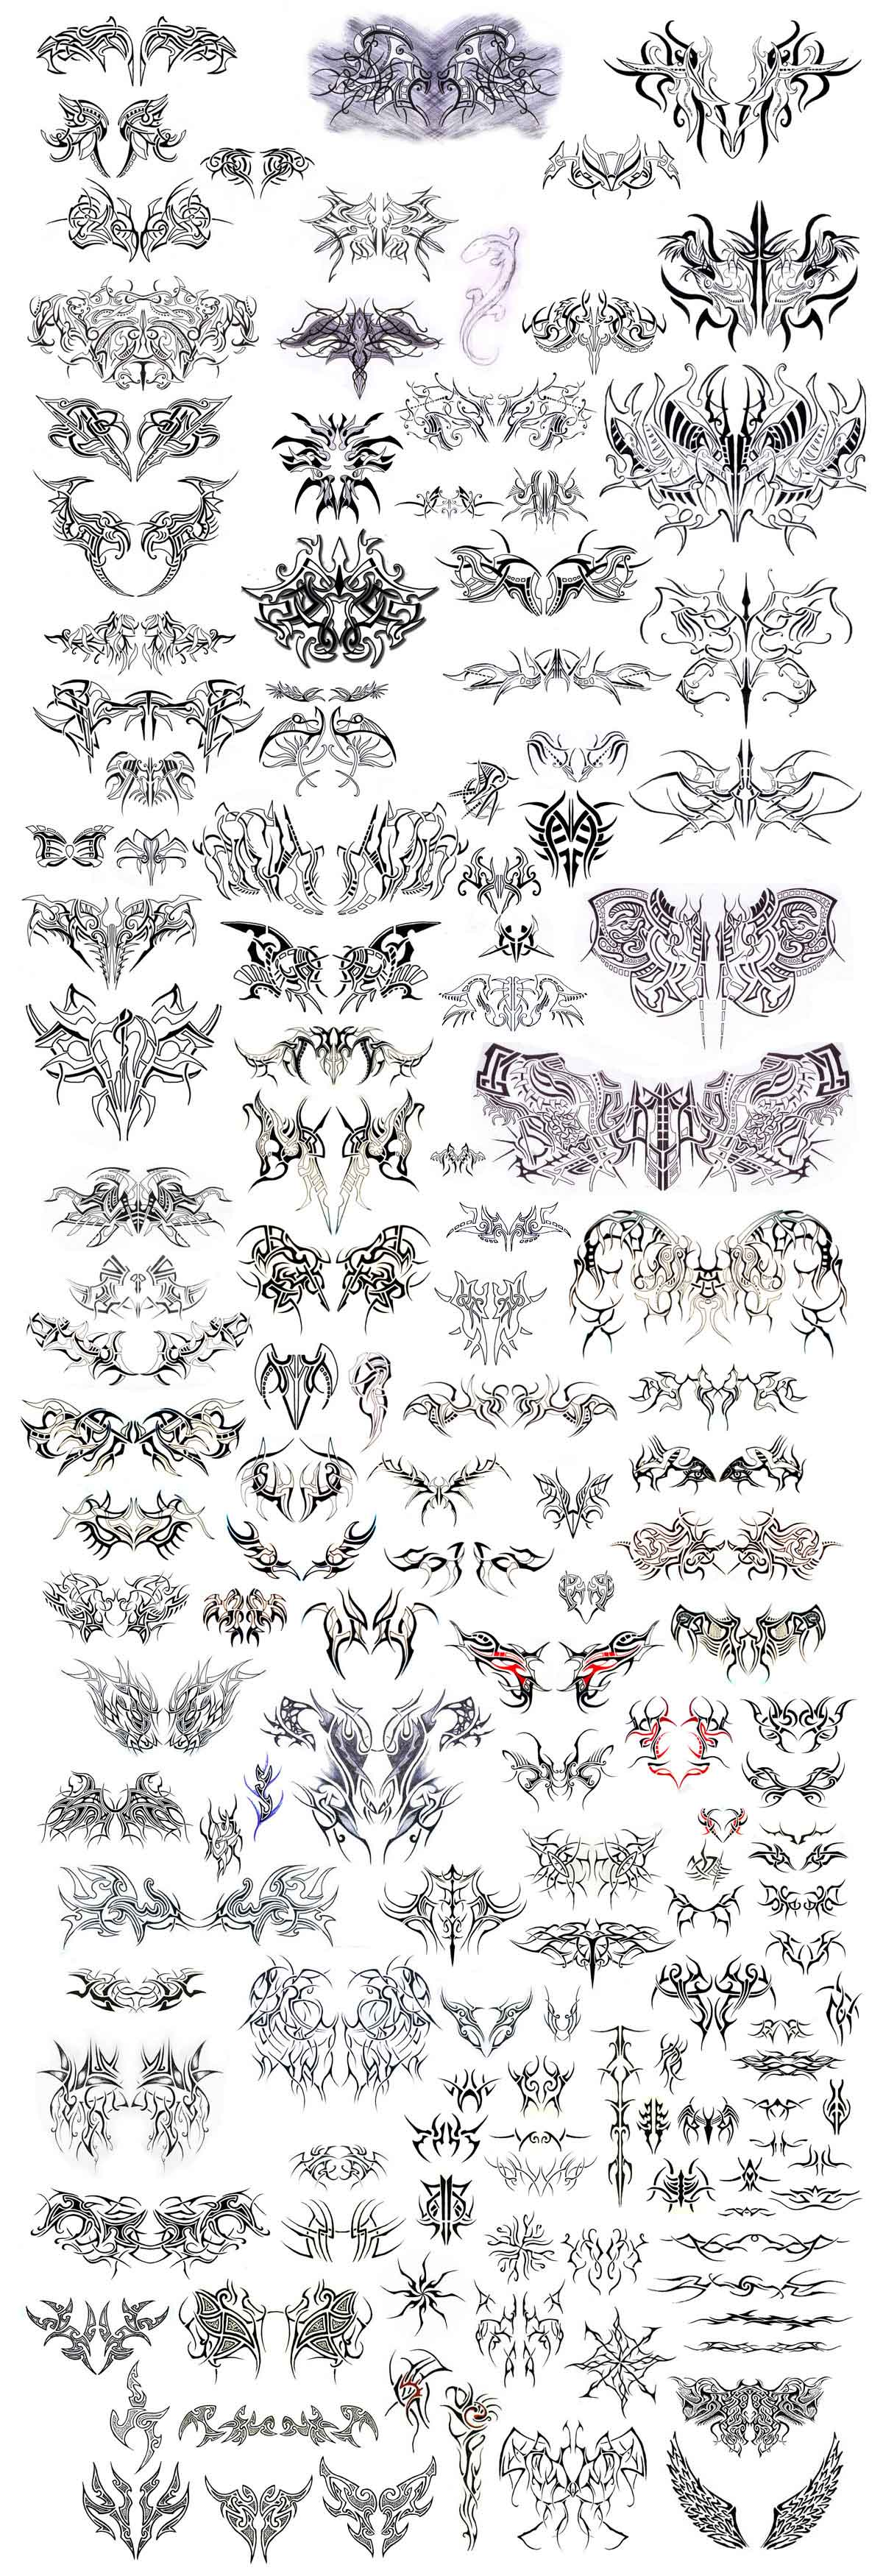 25 000 tattoo flash designs stencils premium set dvd ebay. Black Bedroom Furniture Sets. Home Design Ideas